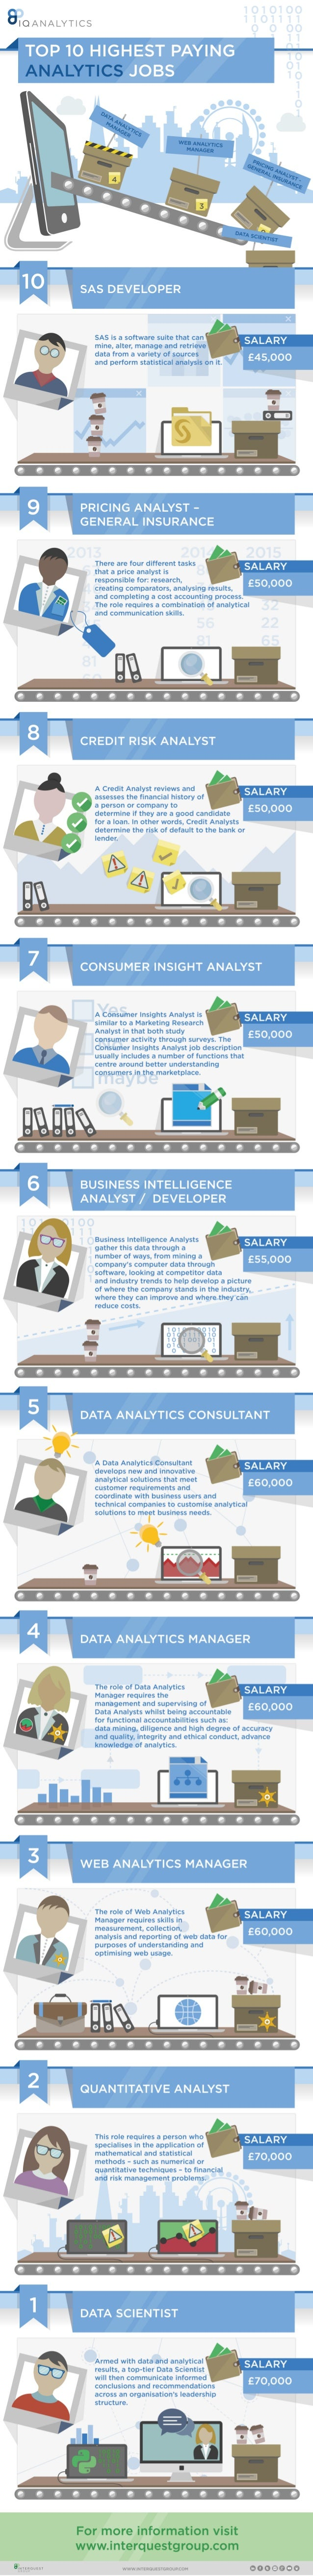 Top 10 Highest Paying Analytics Jobs